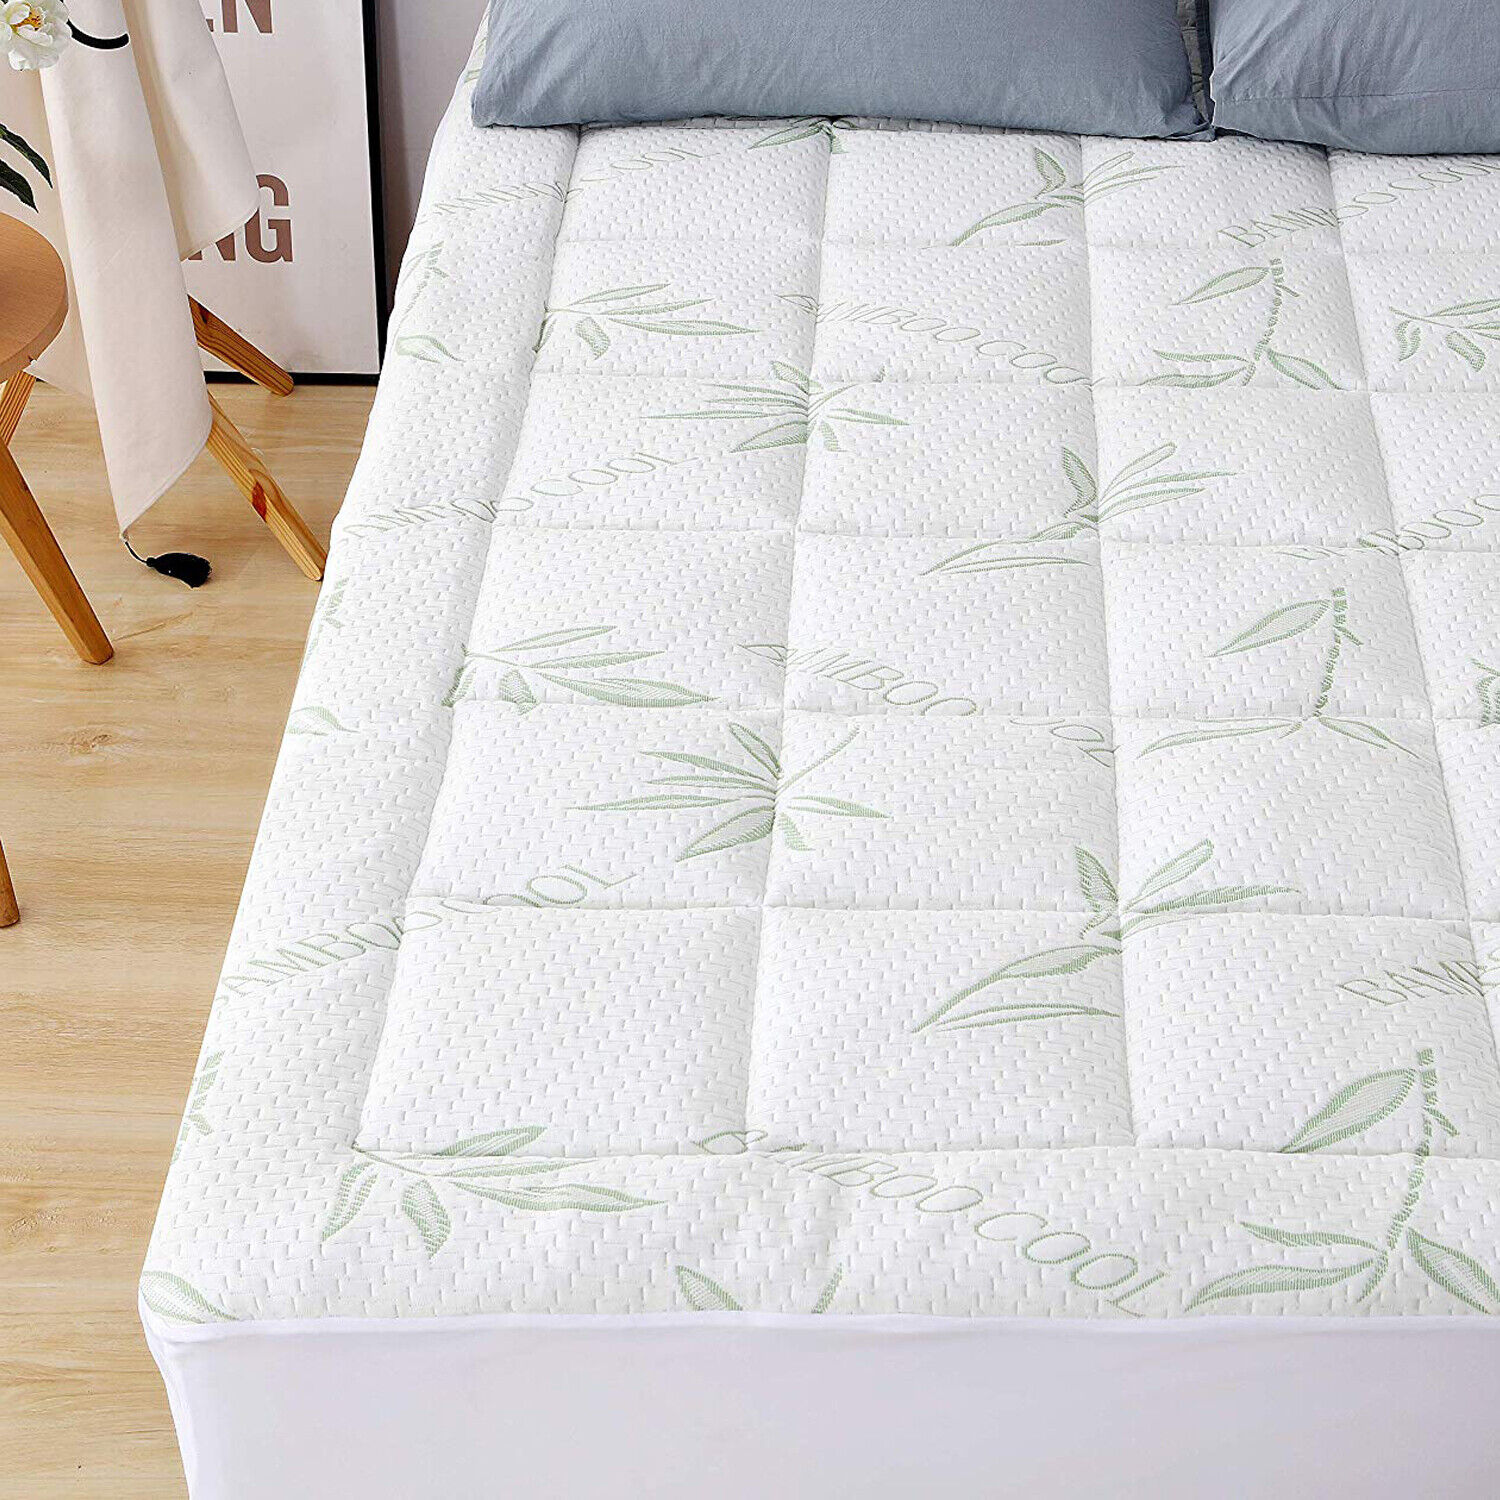 Bamboo Matress Pad Extra Plush Mattress Topper Overfilled Br